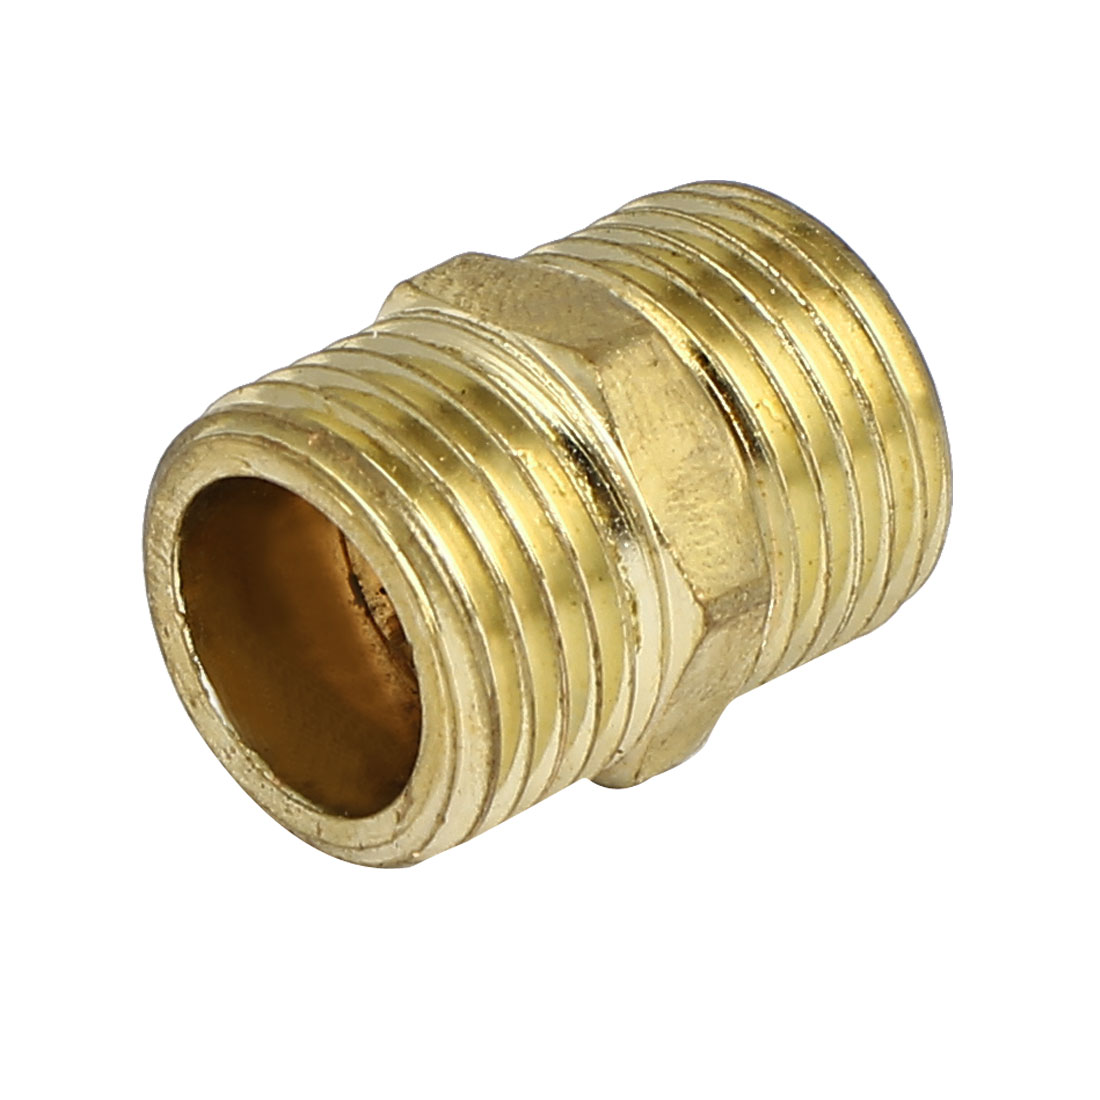 1/2BSP to 1/2BSP Male Thread Air Fuel Water Pipe Fitting Hex Nipple Gold Tone